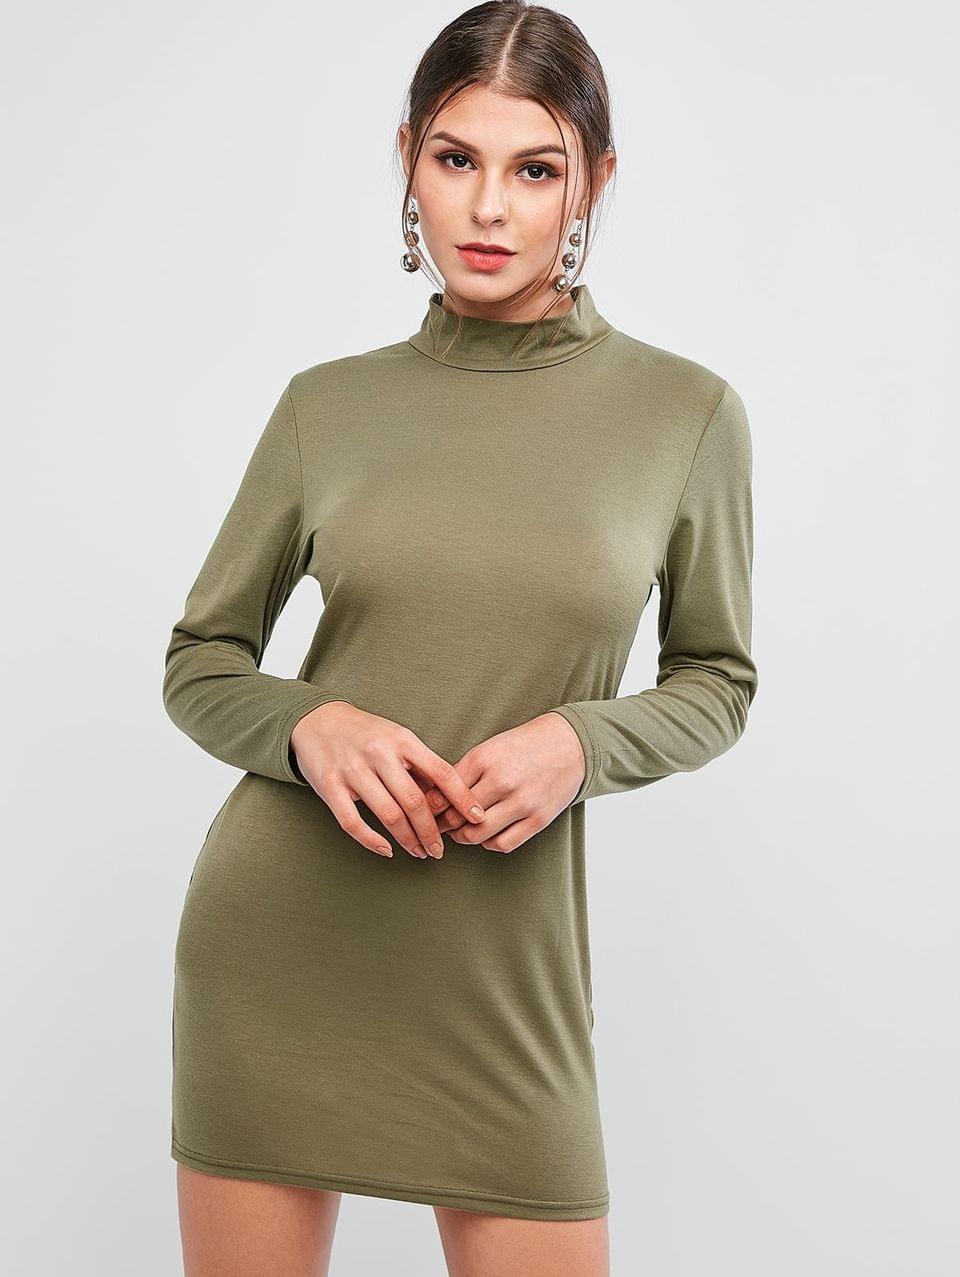 Women's Basic Mock Neck Long Sleeve Bodycon Dress - Camouflage Green Xl